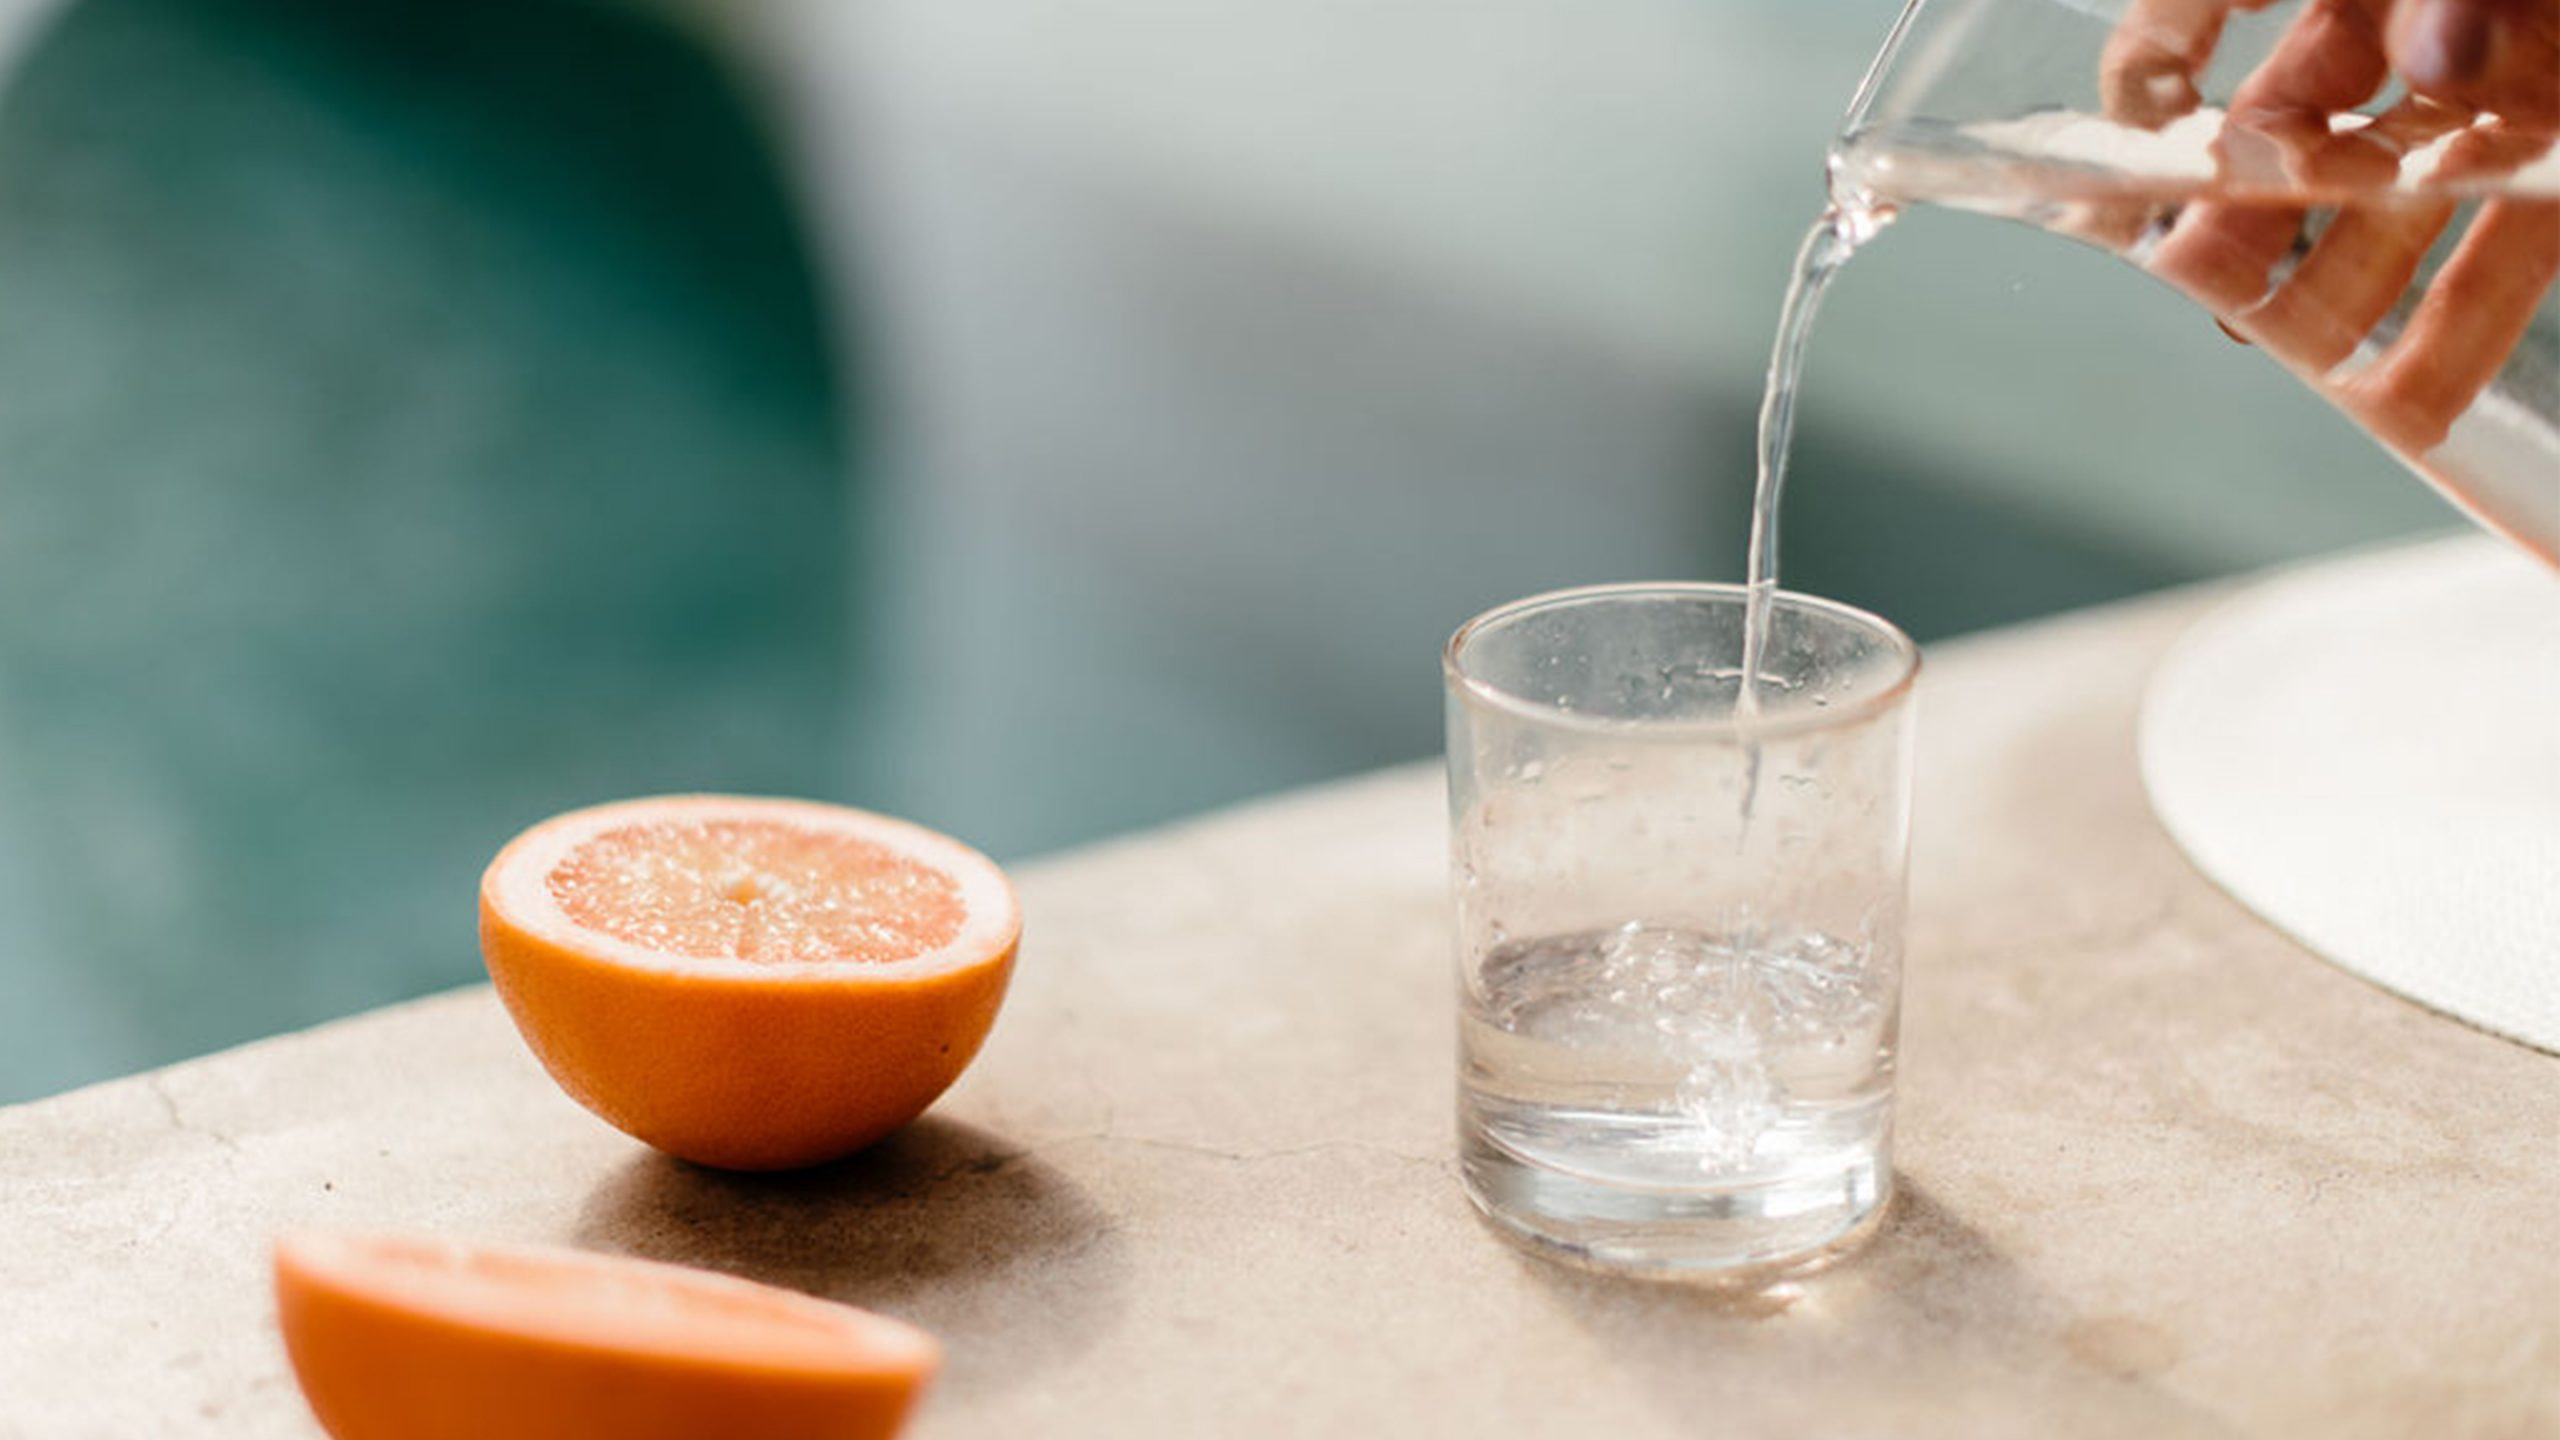 Important Hydration Hacks from the Experts